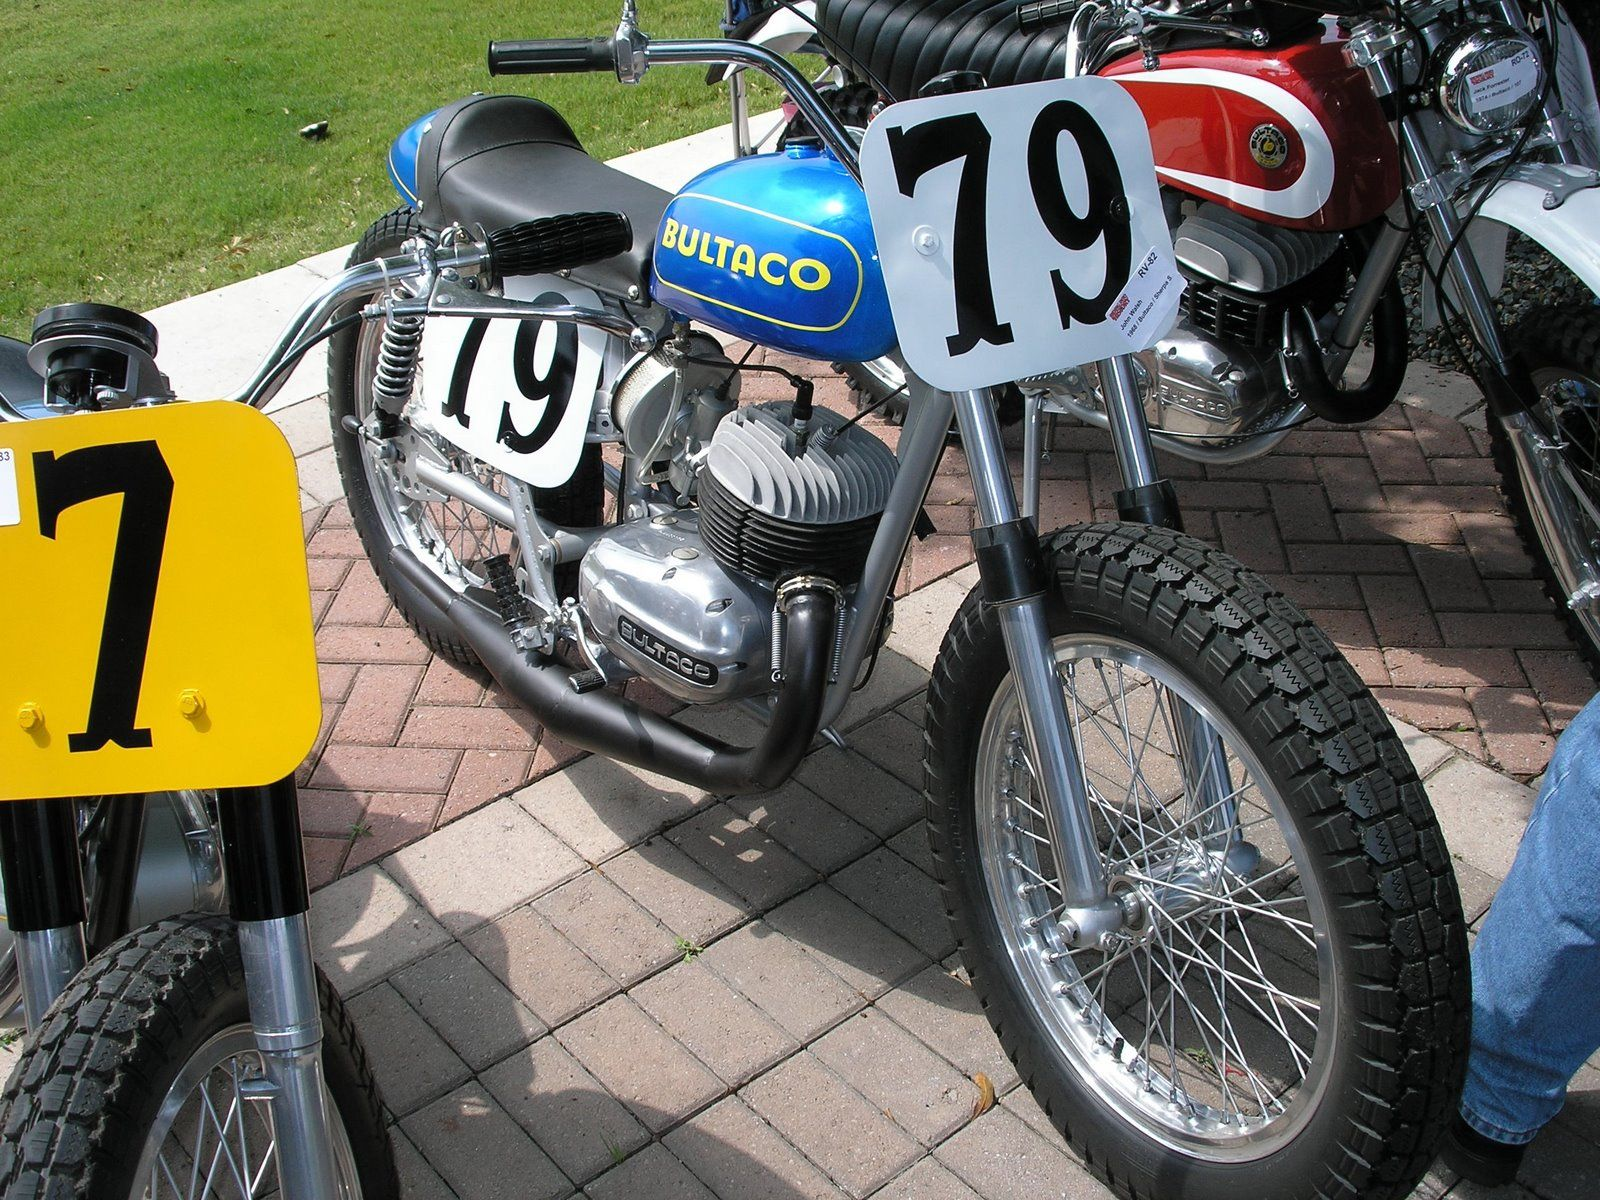 It a flat tracker extravaganza around here lately here s a nice old bultaco set up flat track style